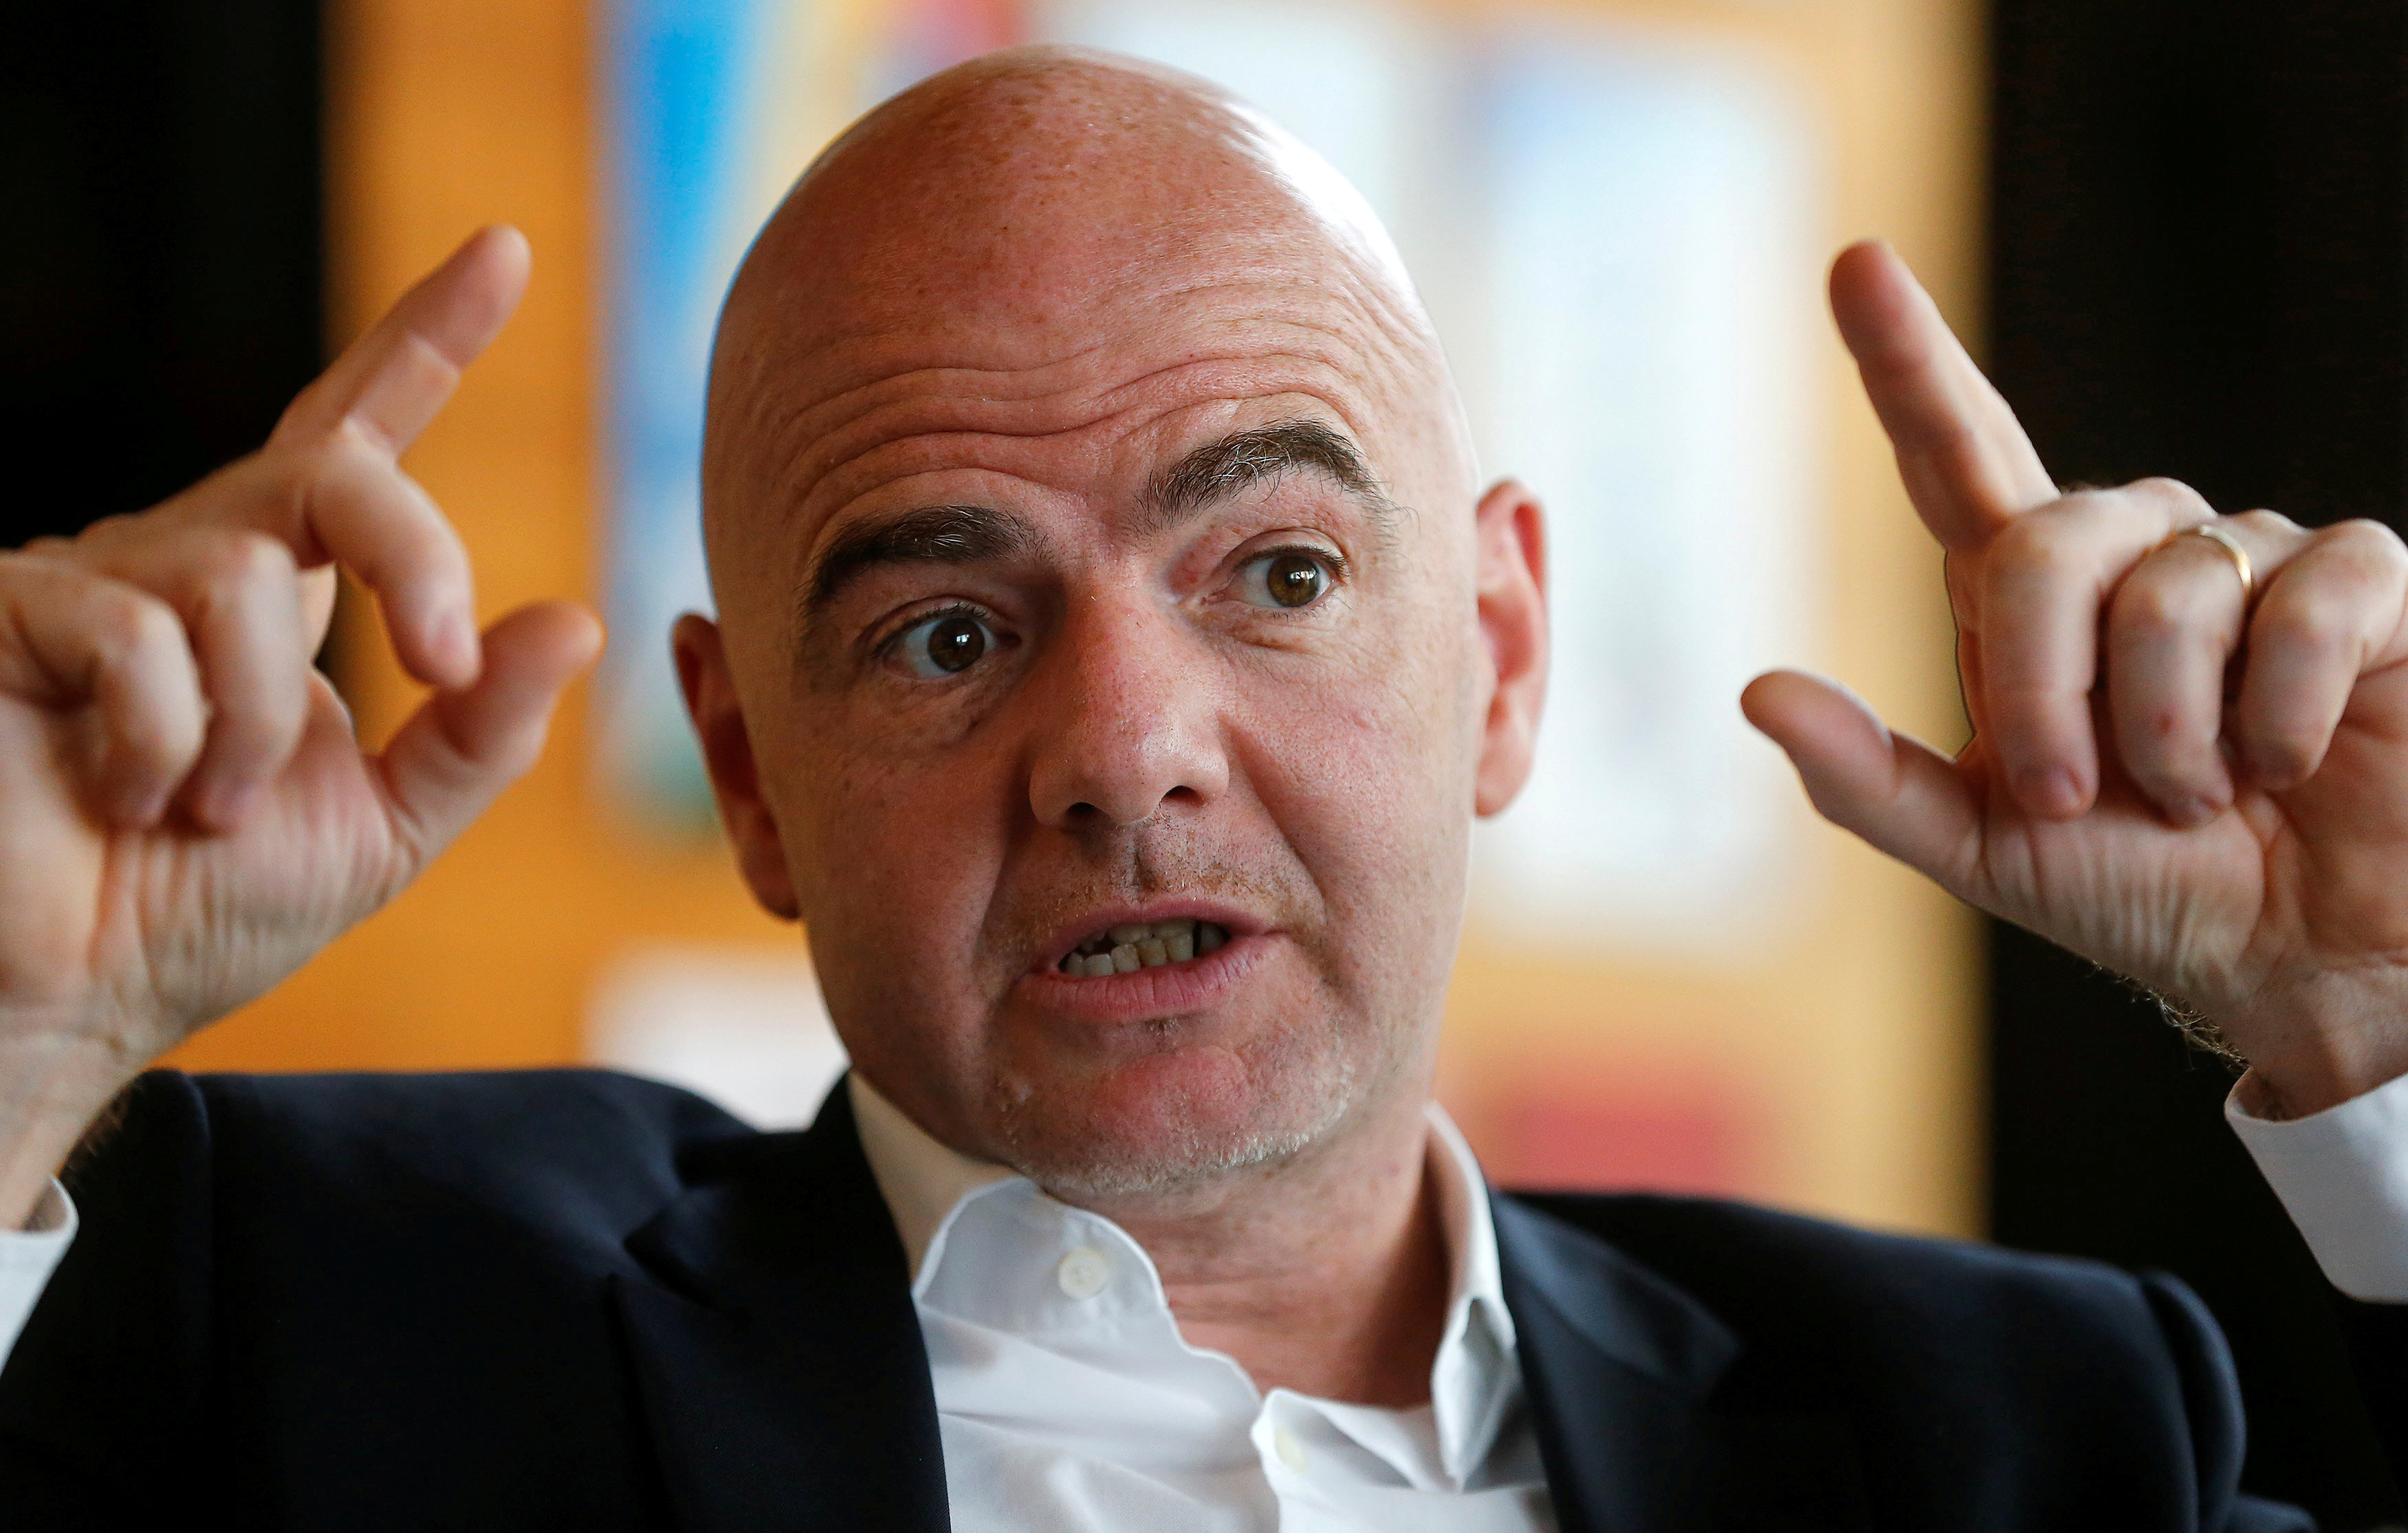 FIFA President Gianni Infantino gestures during an interview with Reuters at the FIFA headquarters in Zurich, Switzerland November 2, 2016. REUTERS/Arnd Wiegmann/File Photo - RTX2RWMI